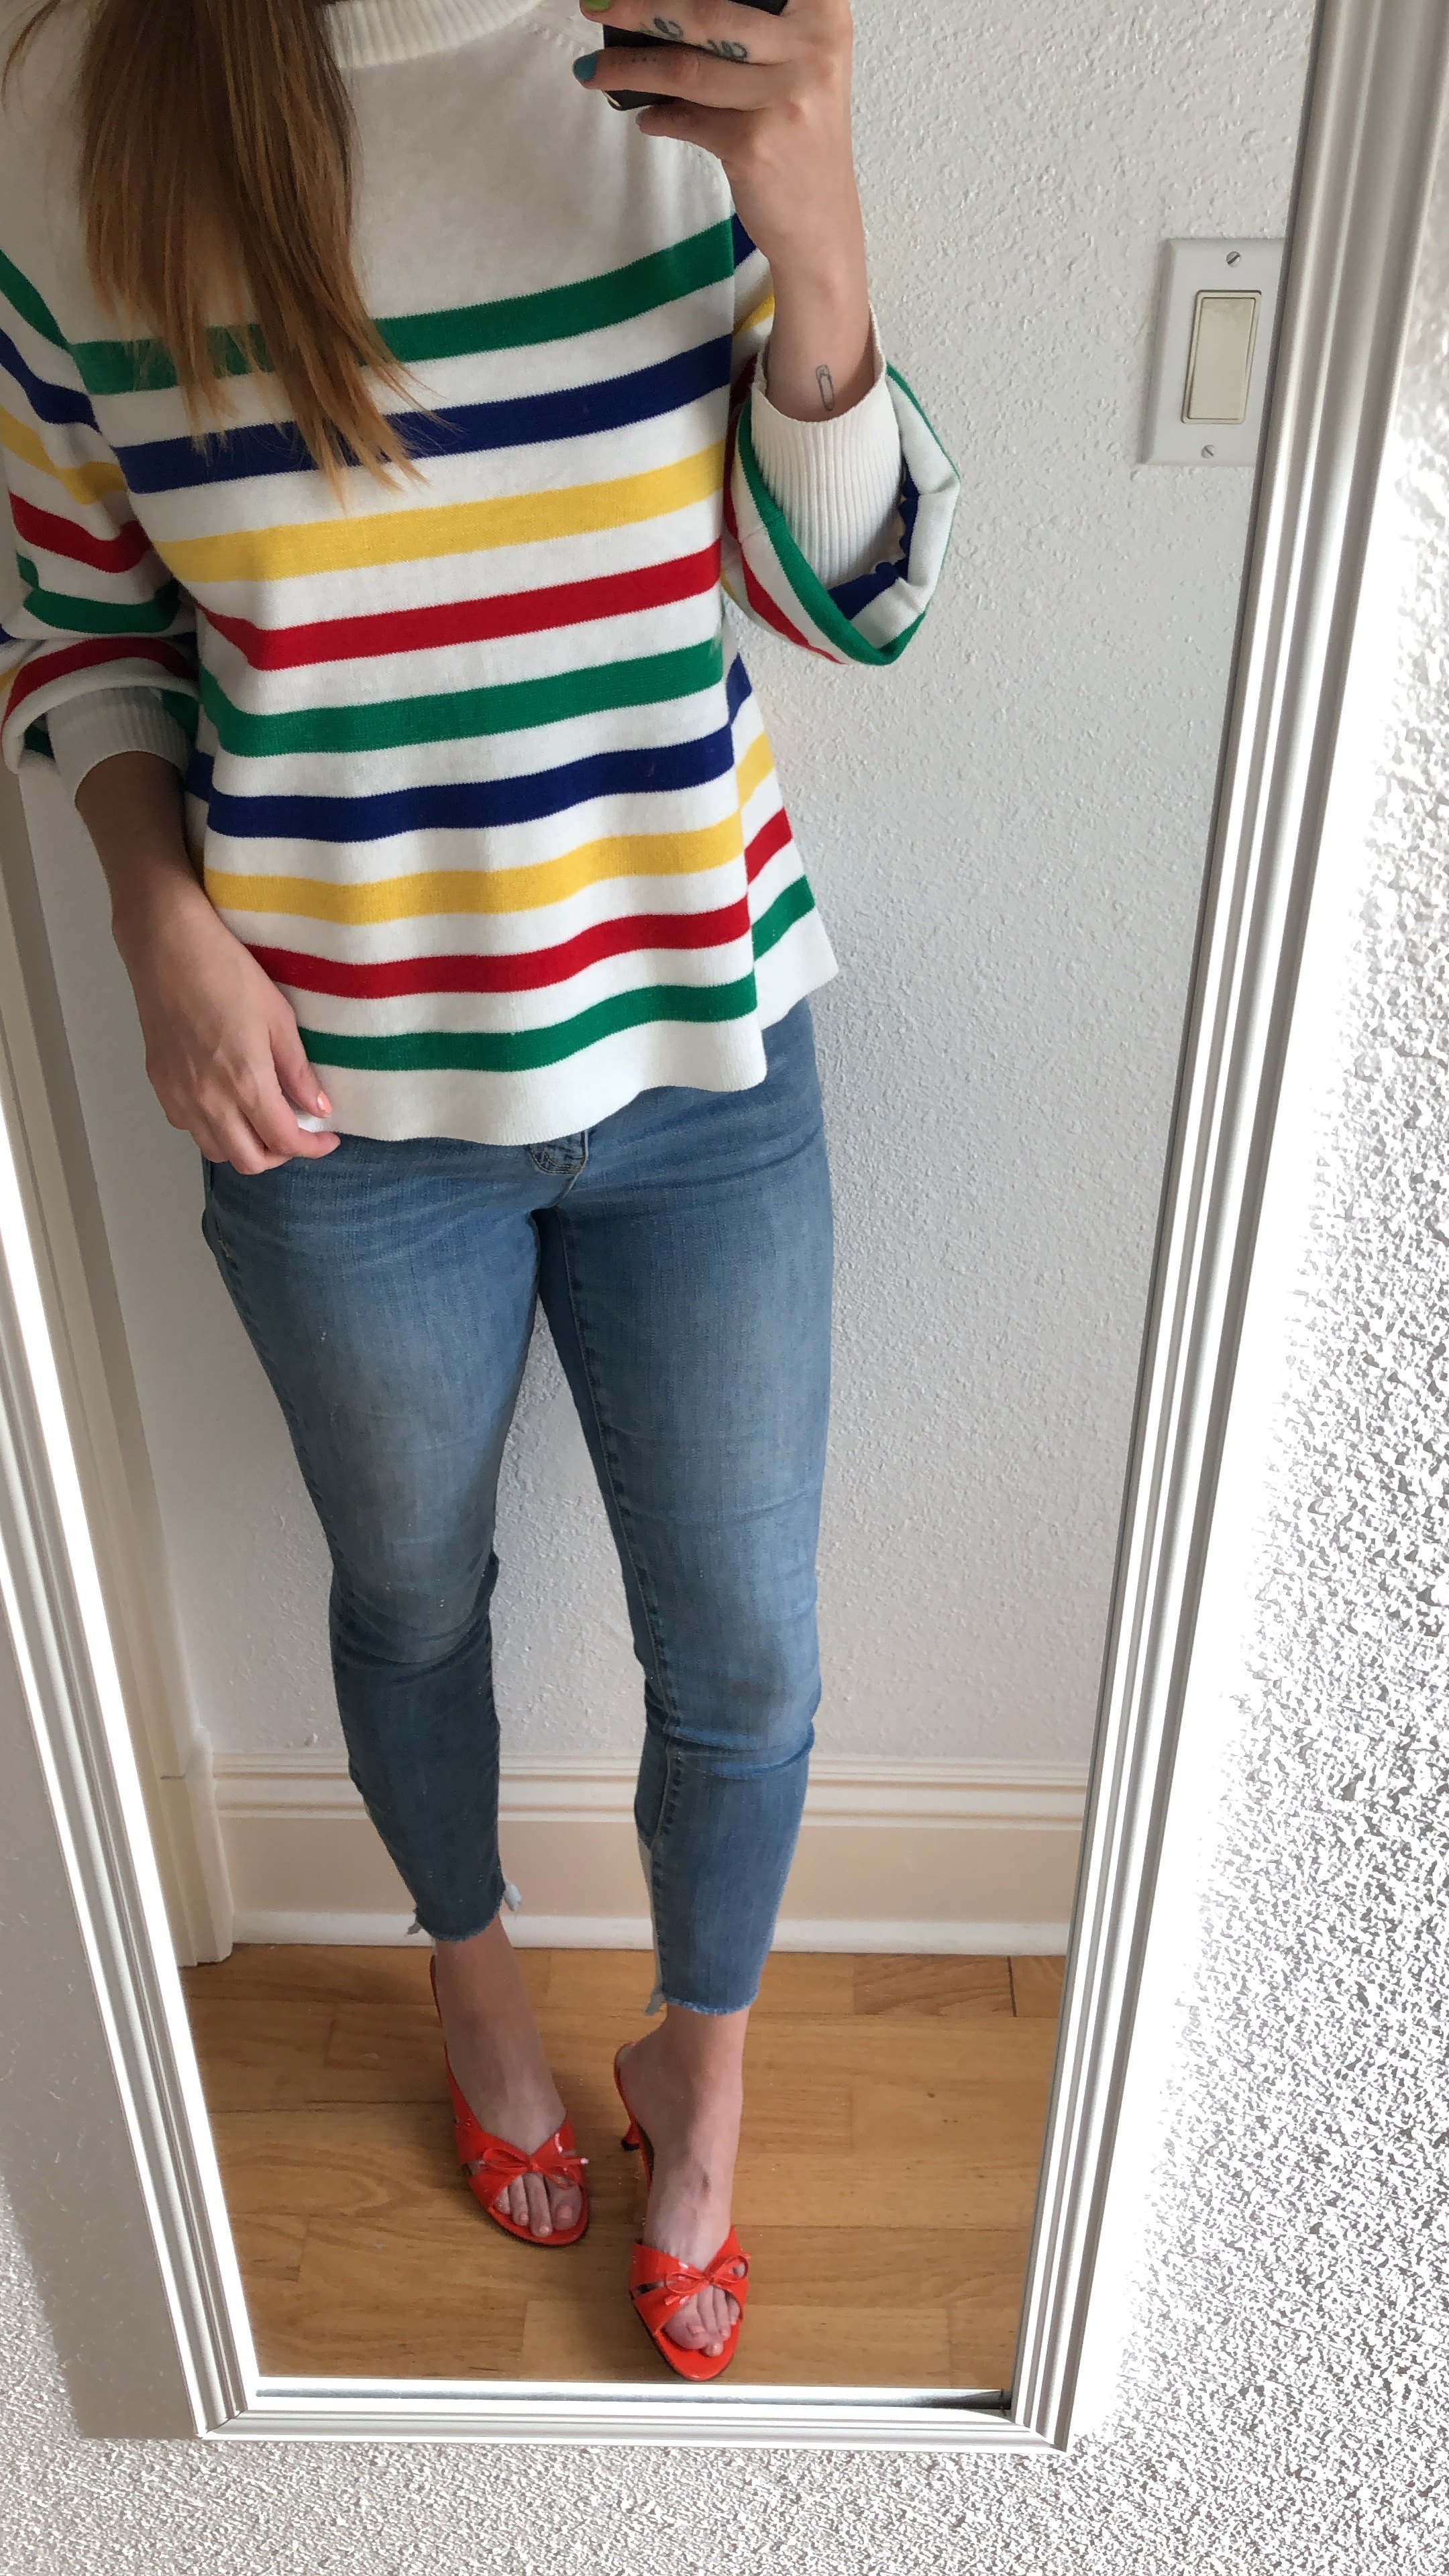 I love my rainbow sweater paired with cute jeans and some bold kitten heels!